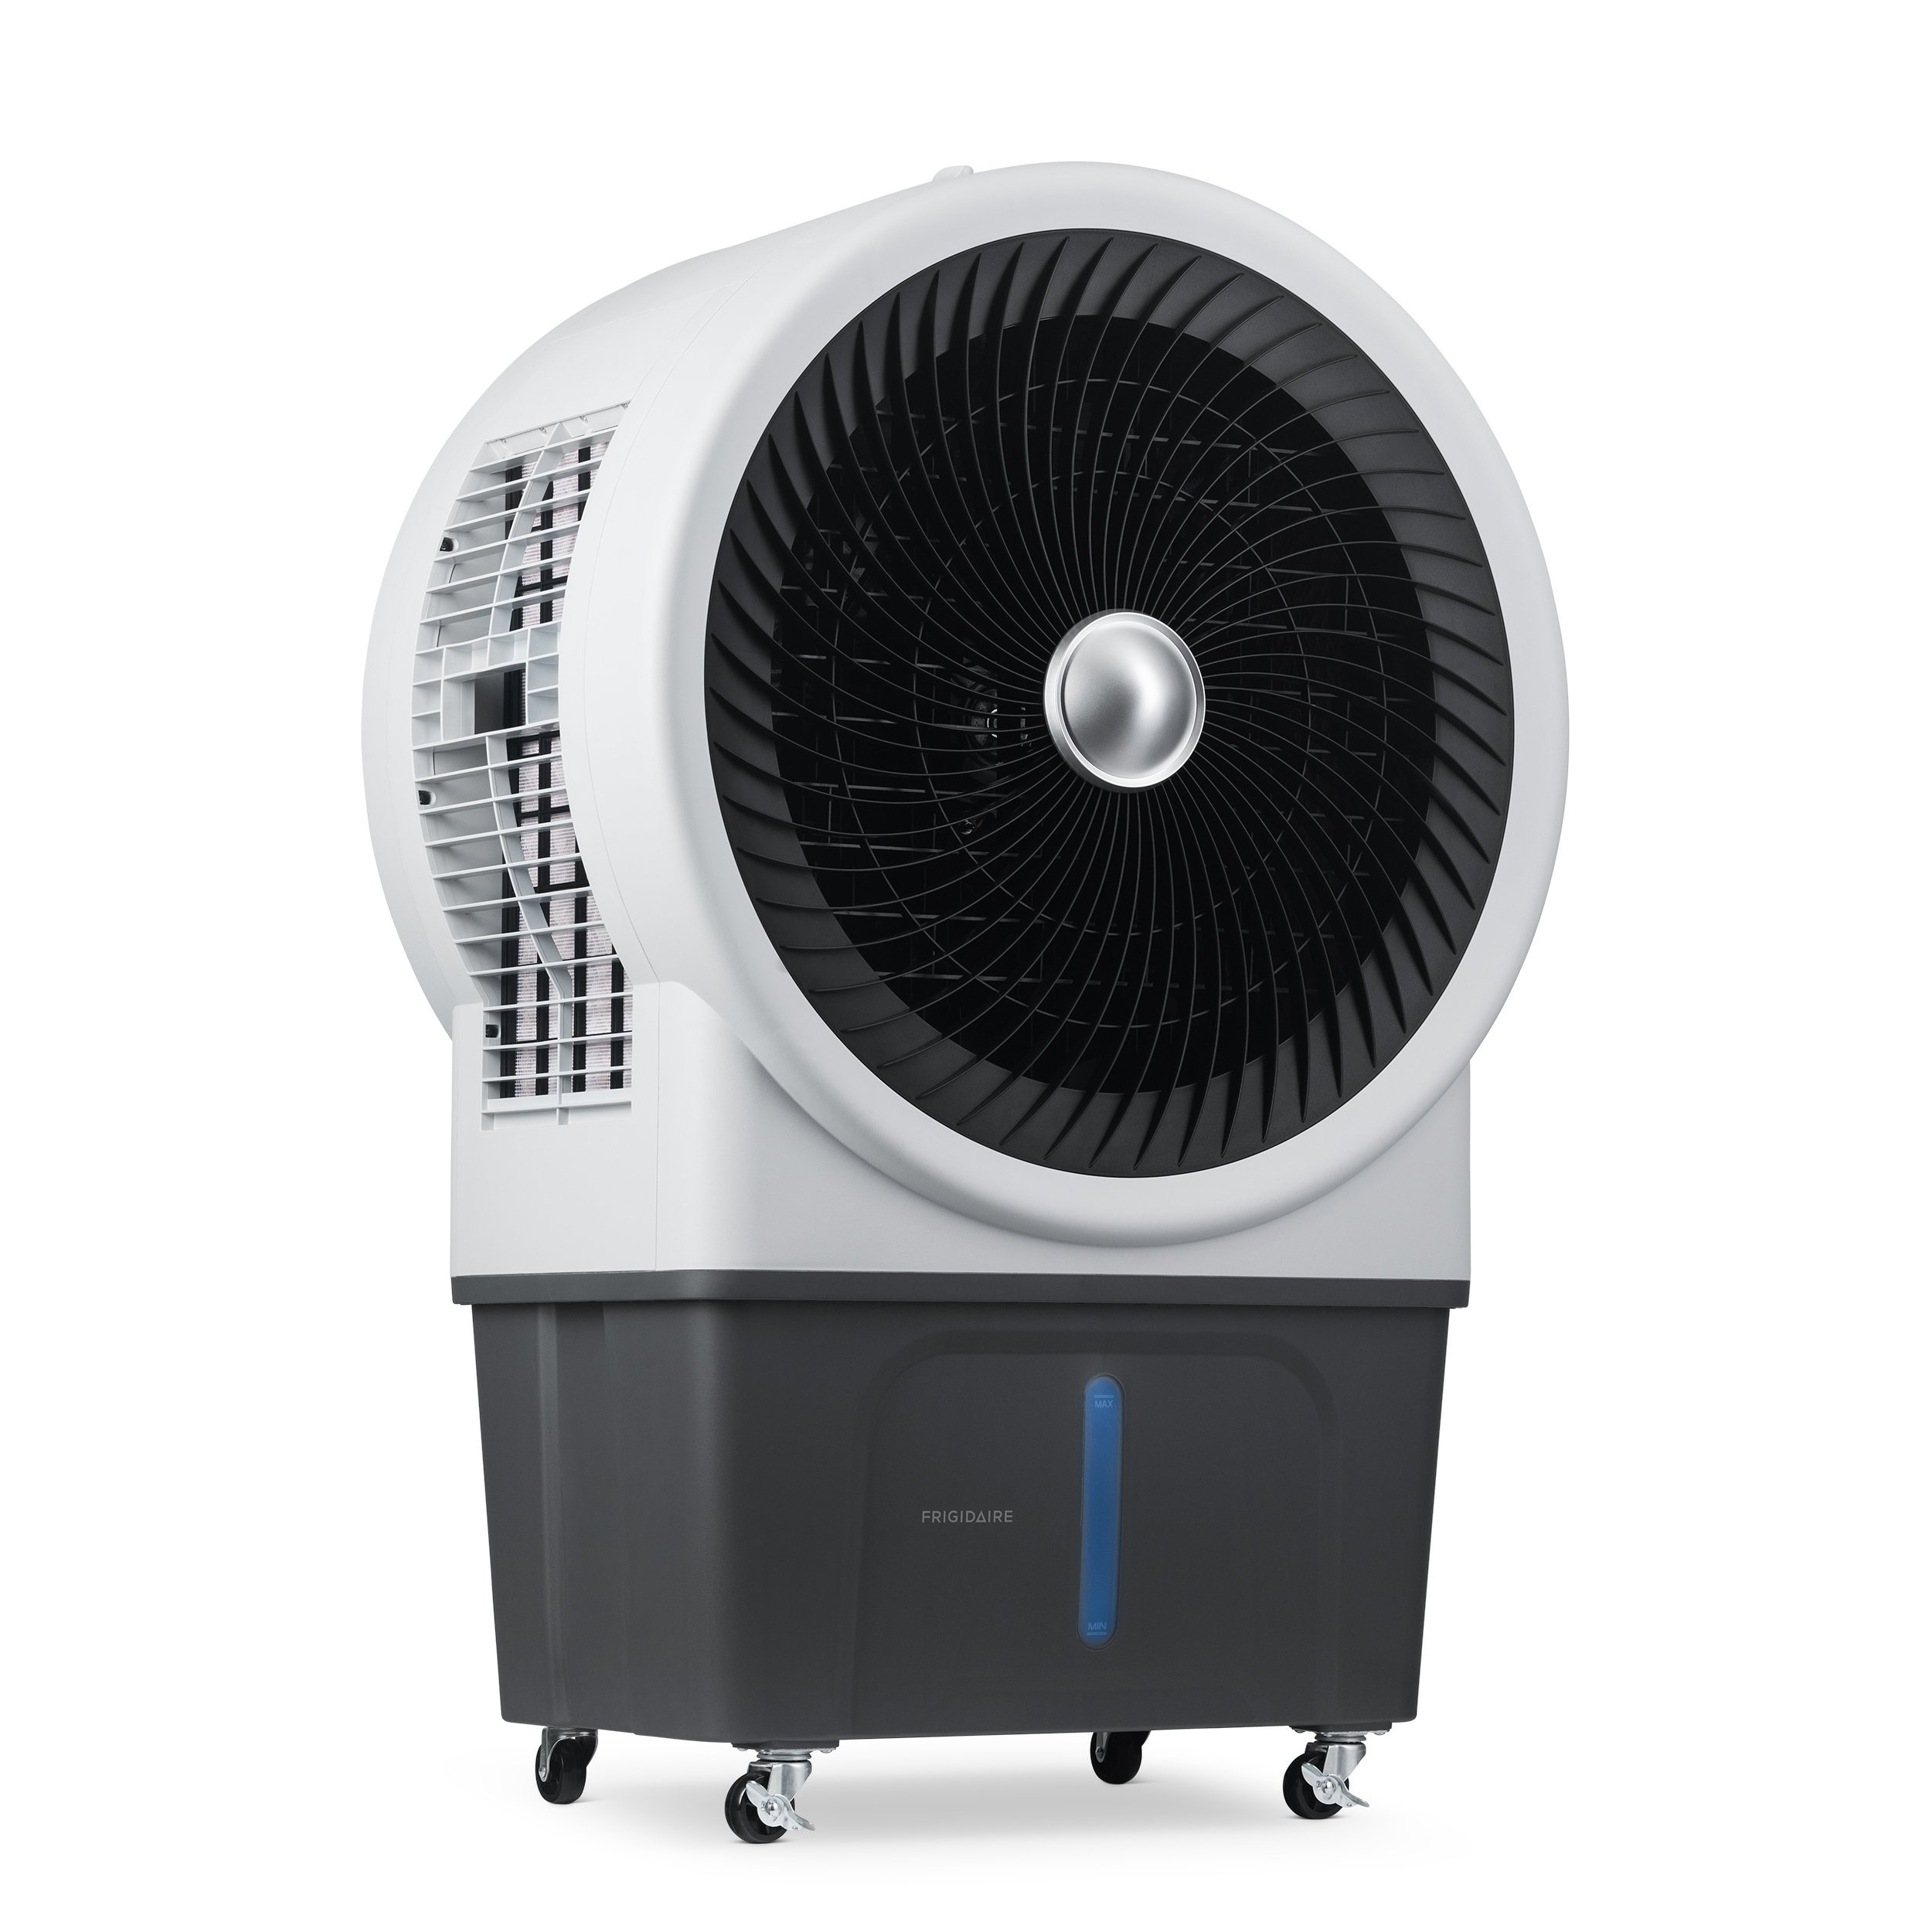 Frigidaire Indoor and Outdoor Evaporative Air Cooler, 3500 CFM with Energy Efficient Eco-Friendly Cooling, 21 Gallon Water Tank